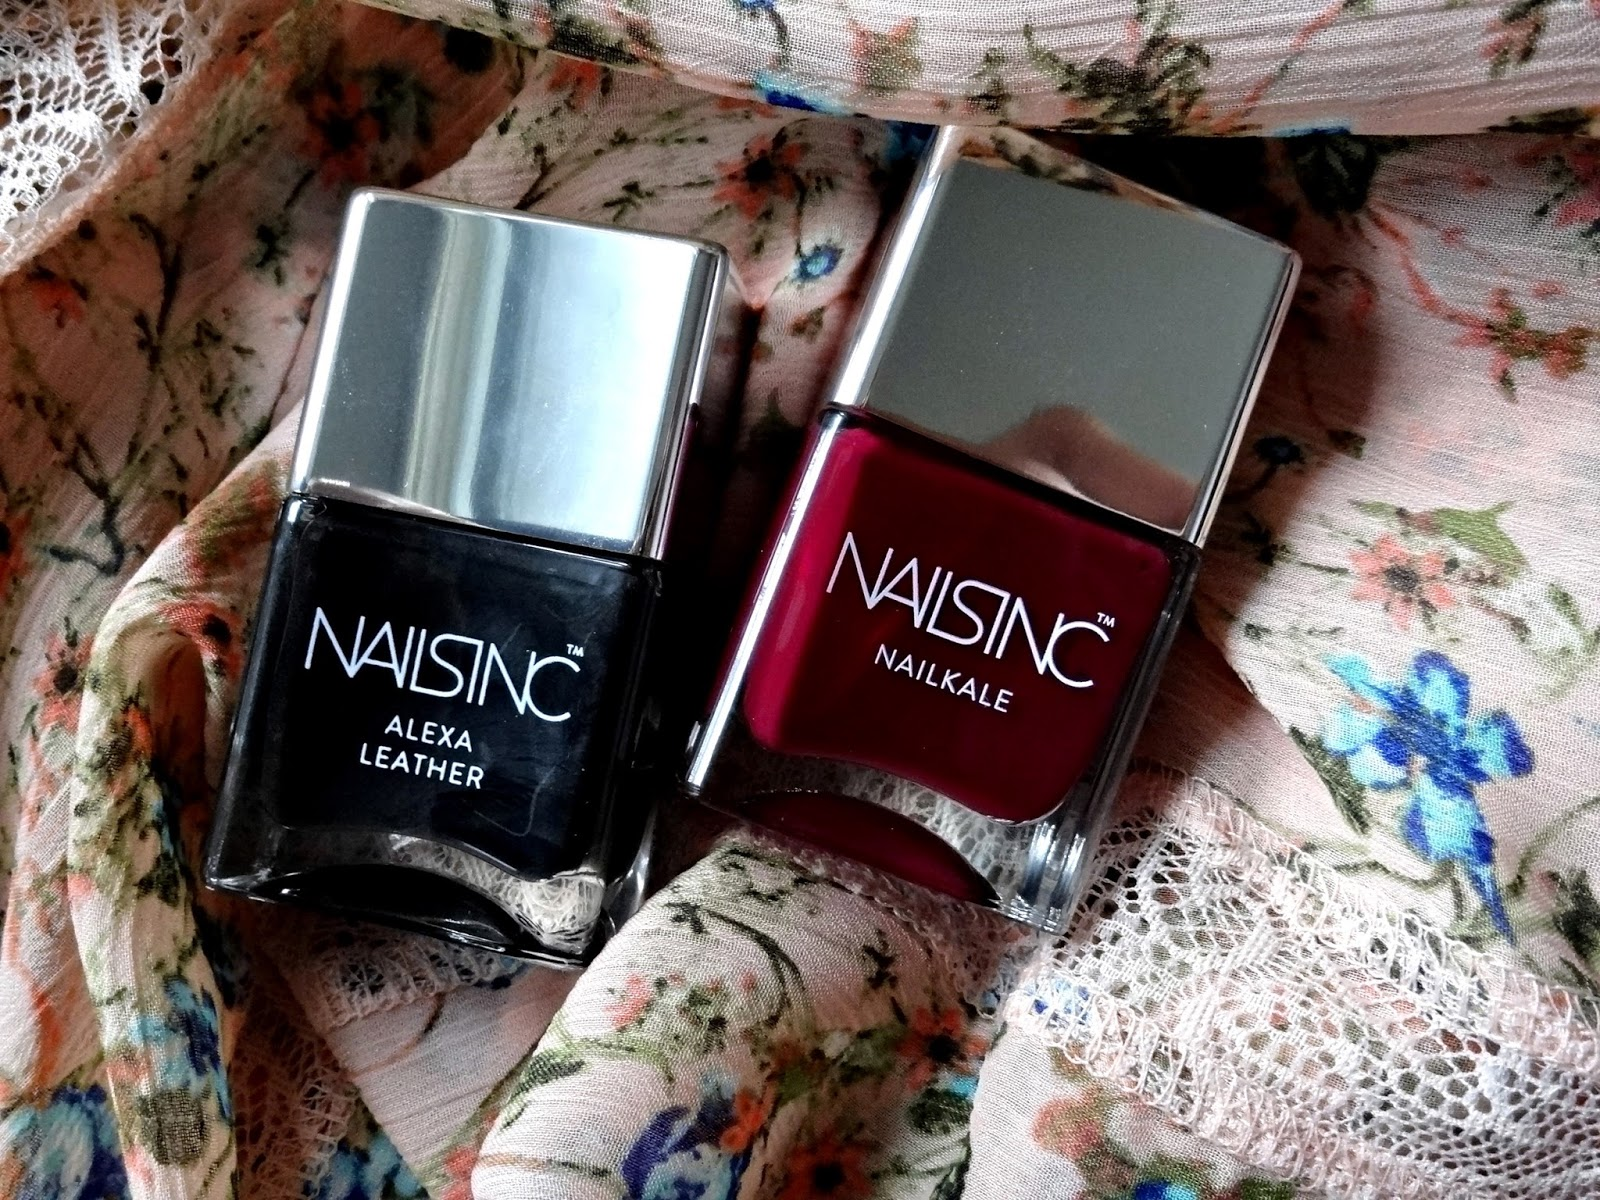 Nails Inc. Nailkale in Holland Walk and Alexa Leather Review, Photos & Swatches